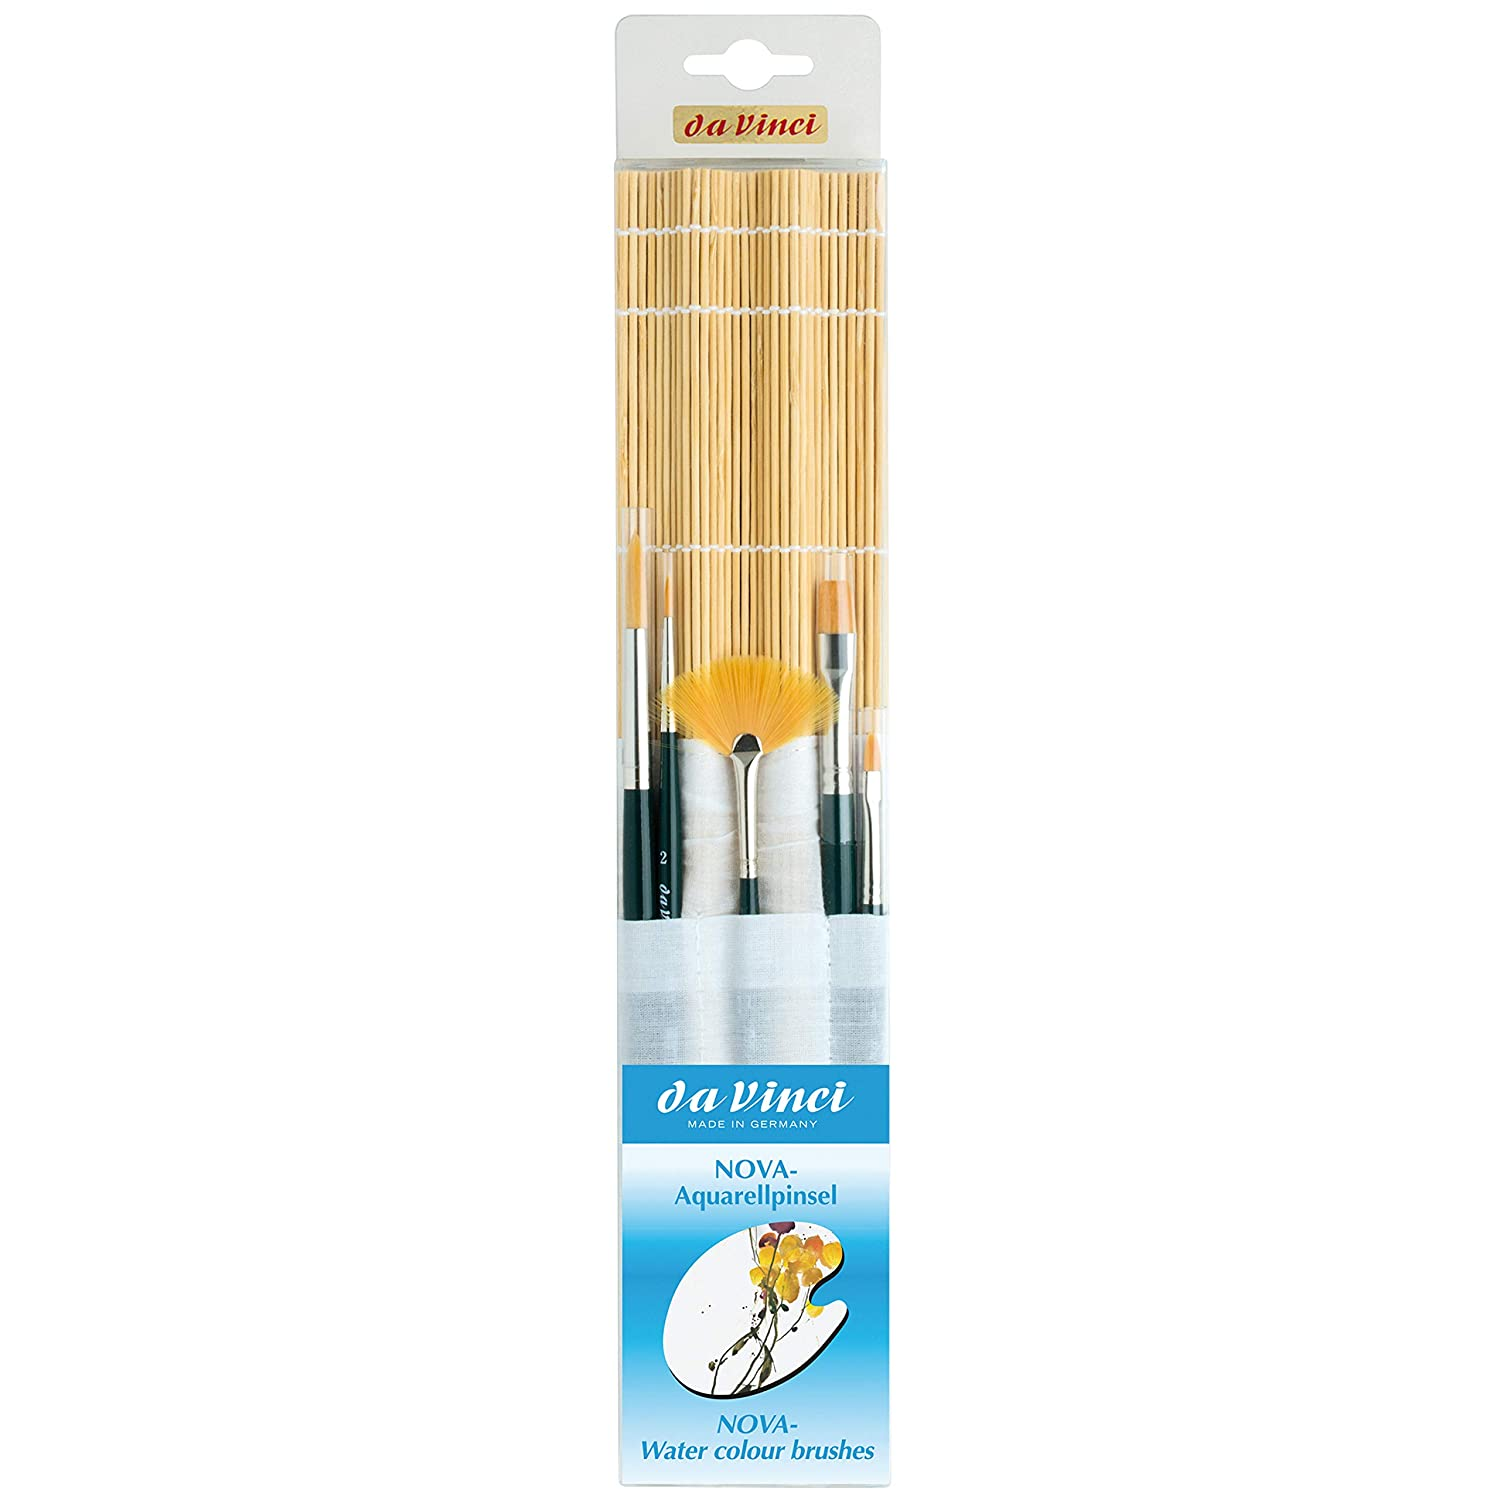 (Nova Short + Bamboo Mat) - da Vinci Watercolour Series 5307 Nova Paint Brush Set, Synthetic with Bamboo Brush Mat, Multiple Sizes, 5 Brushes 5307  B00O1PAPP0